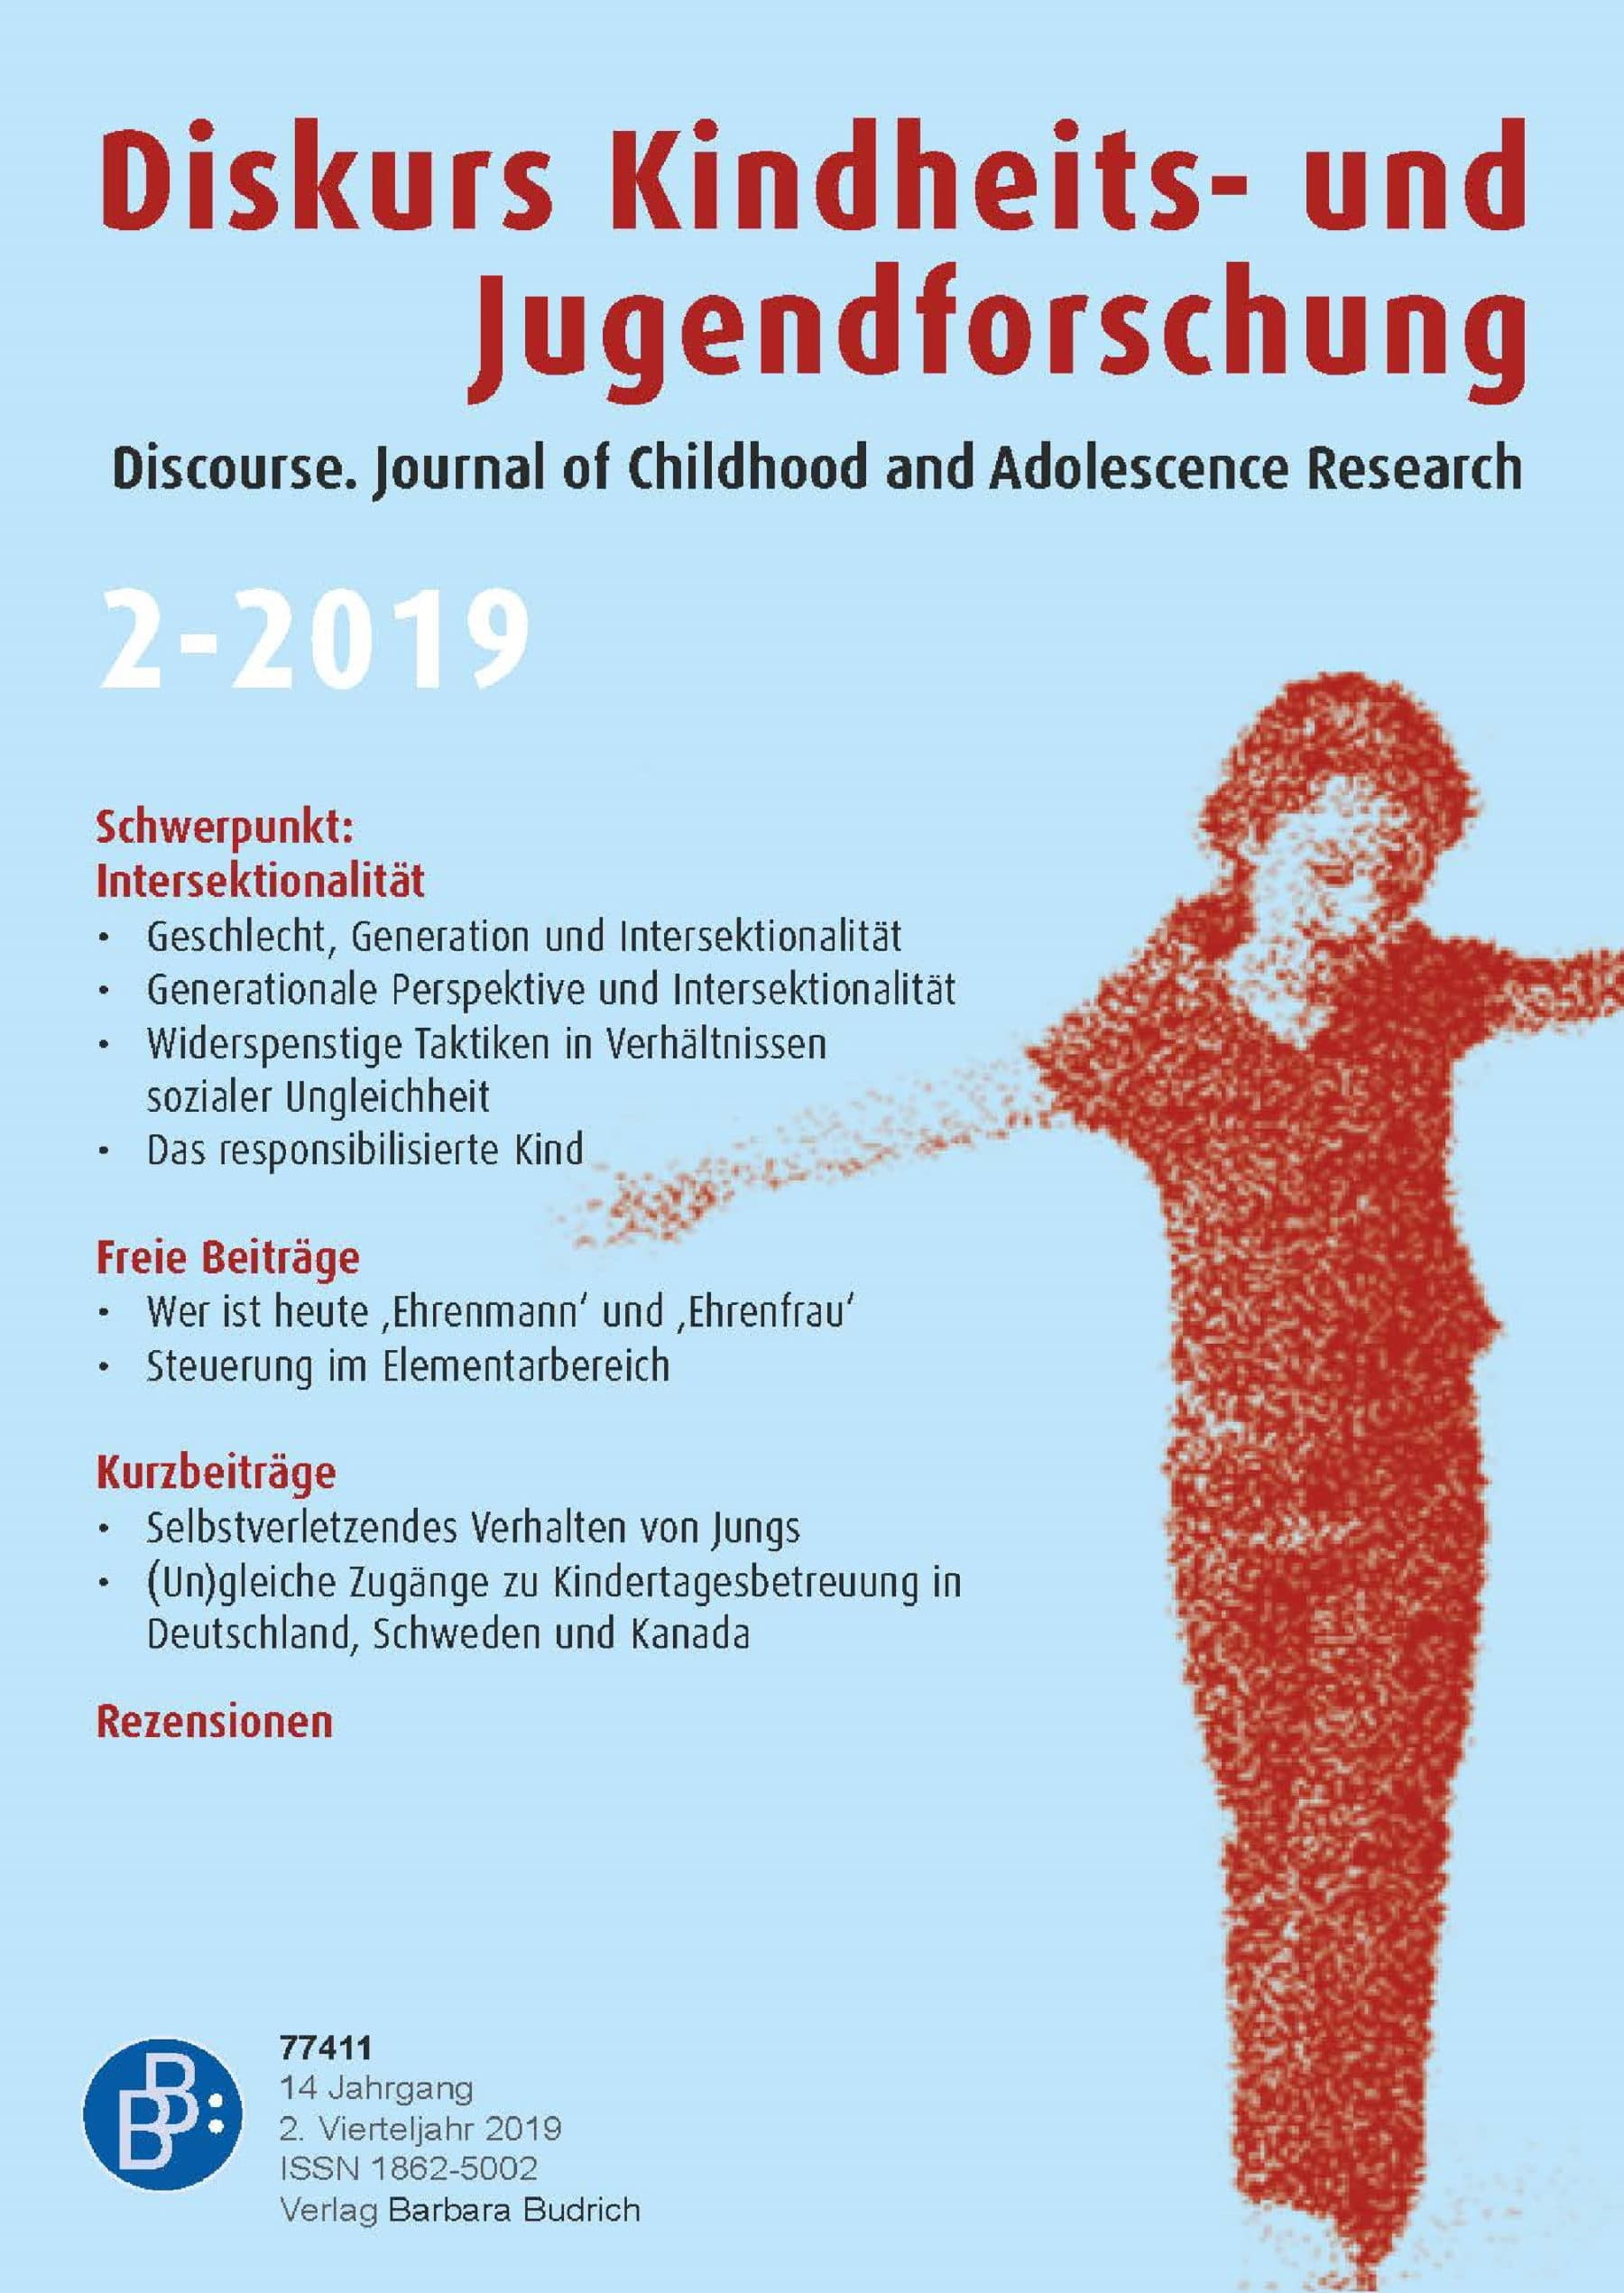 Diskurs Kindheits- und Jugendforschung / Discourse. Journal of Childhood and Adolescence Research 2-2019: Intersektionalität in der Kindheits- und Jugendforschung